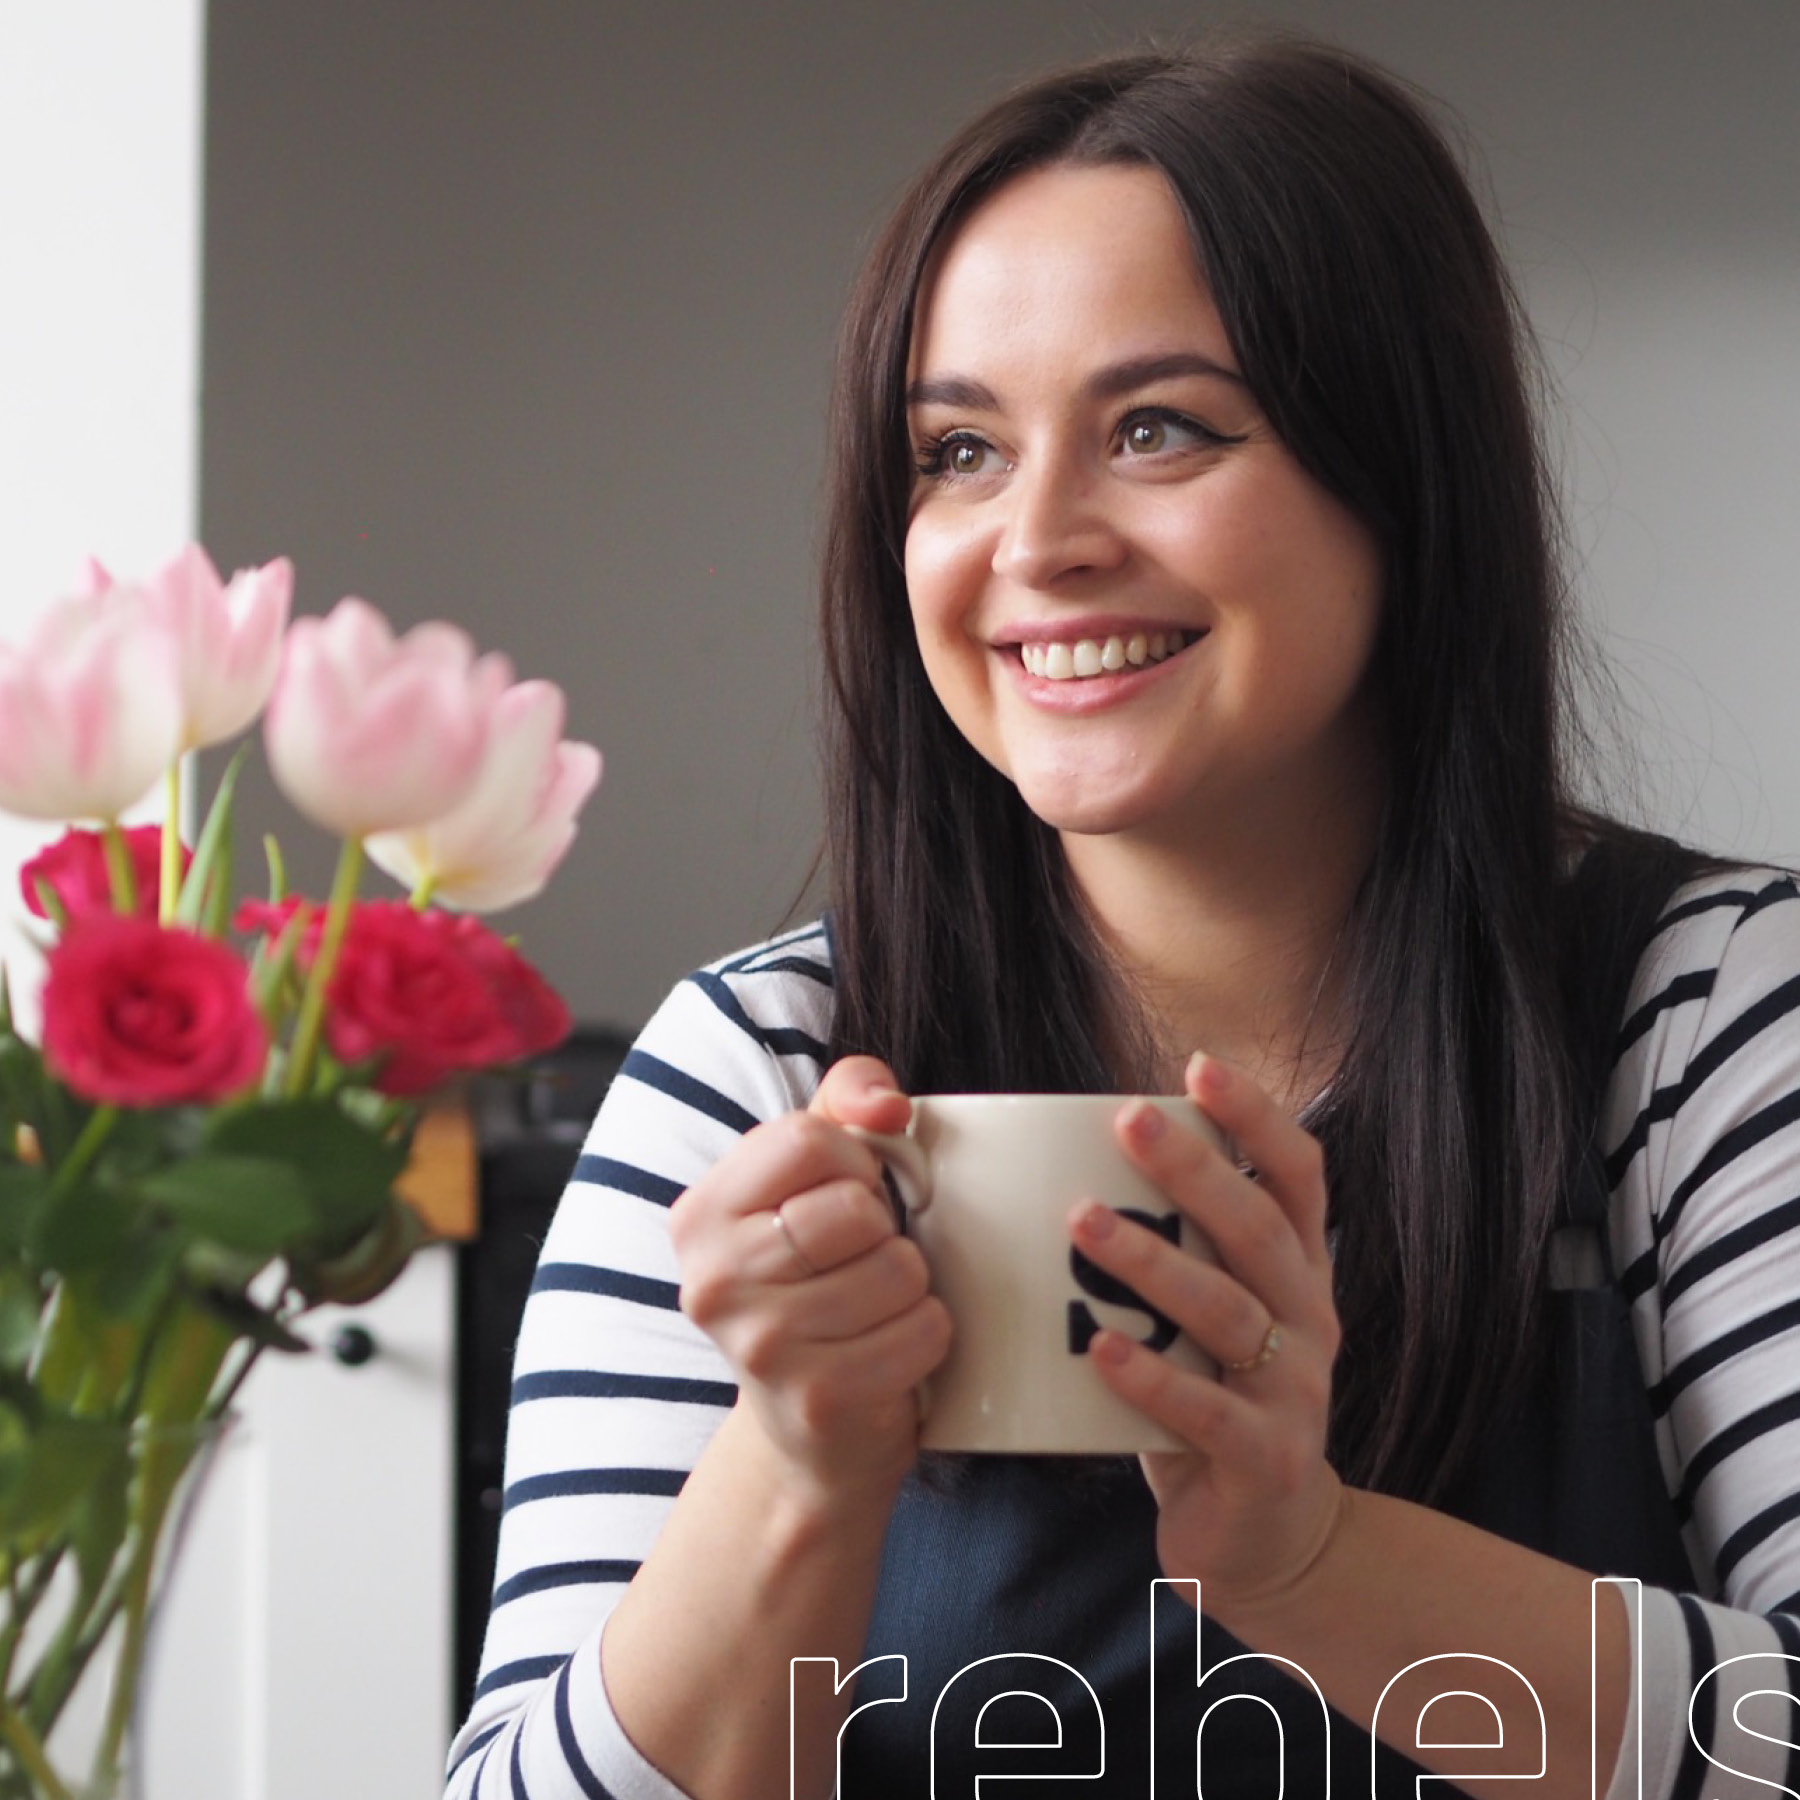 Sophie Cliff is sitting in front of a white wall, smiling, and looking off camera to the left. She is wearing a white shirt with blue stripes underneath what appears to be a dark blue denim overall. She holding a white mug with the initial S on it in both hands. To the left of the image is a flower bouquet in a vase with dark pink roses and white and light pink tulips.